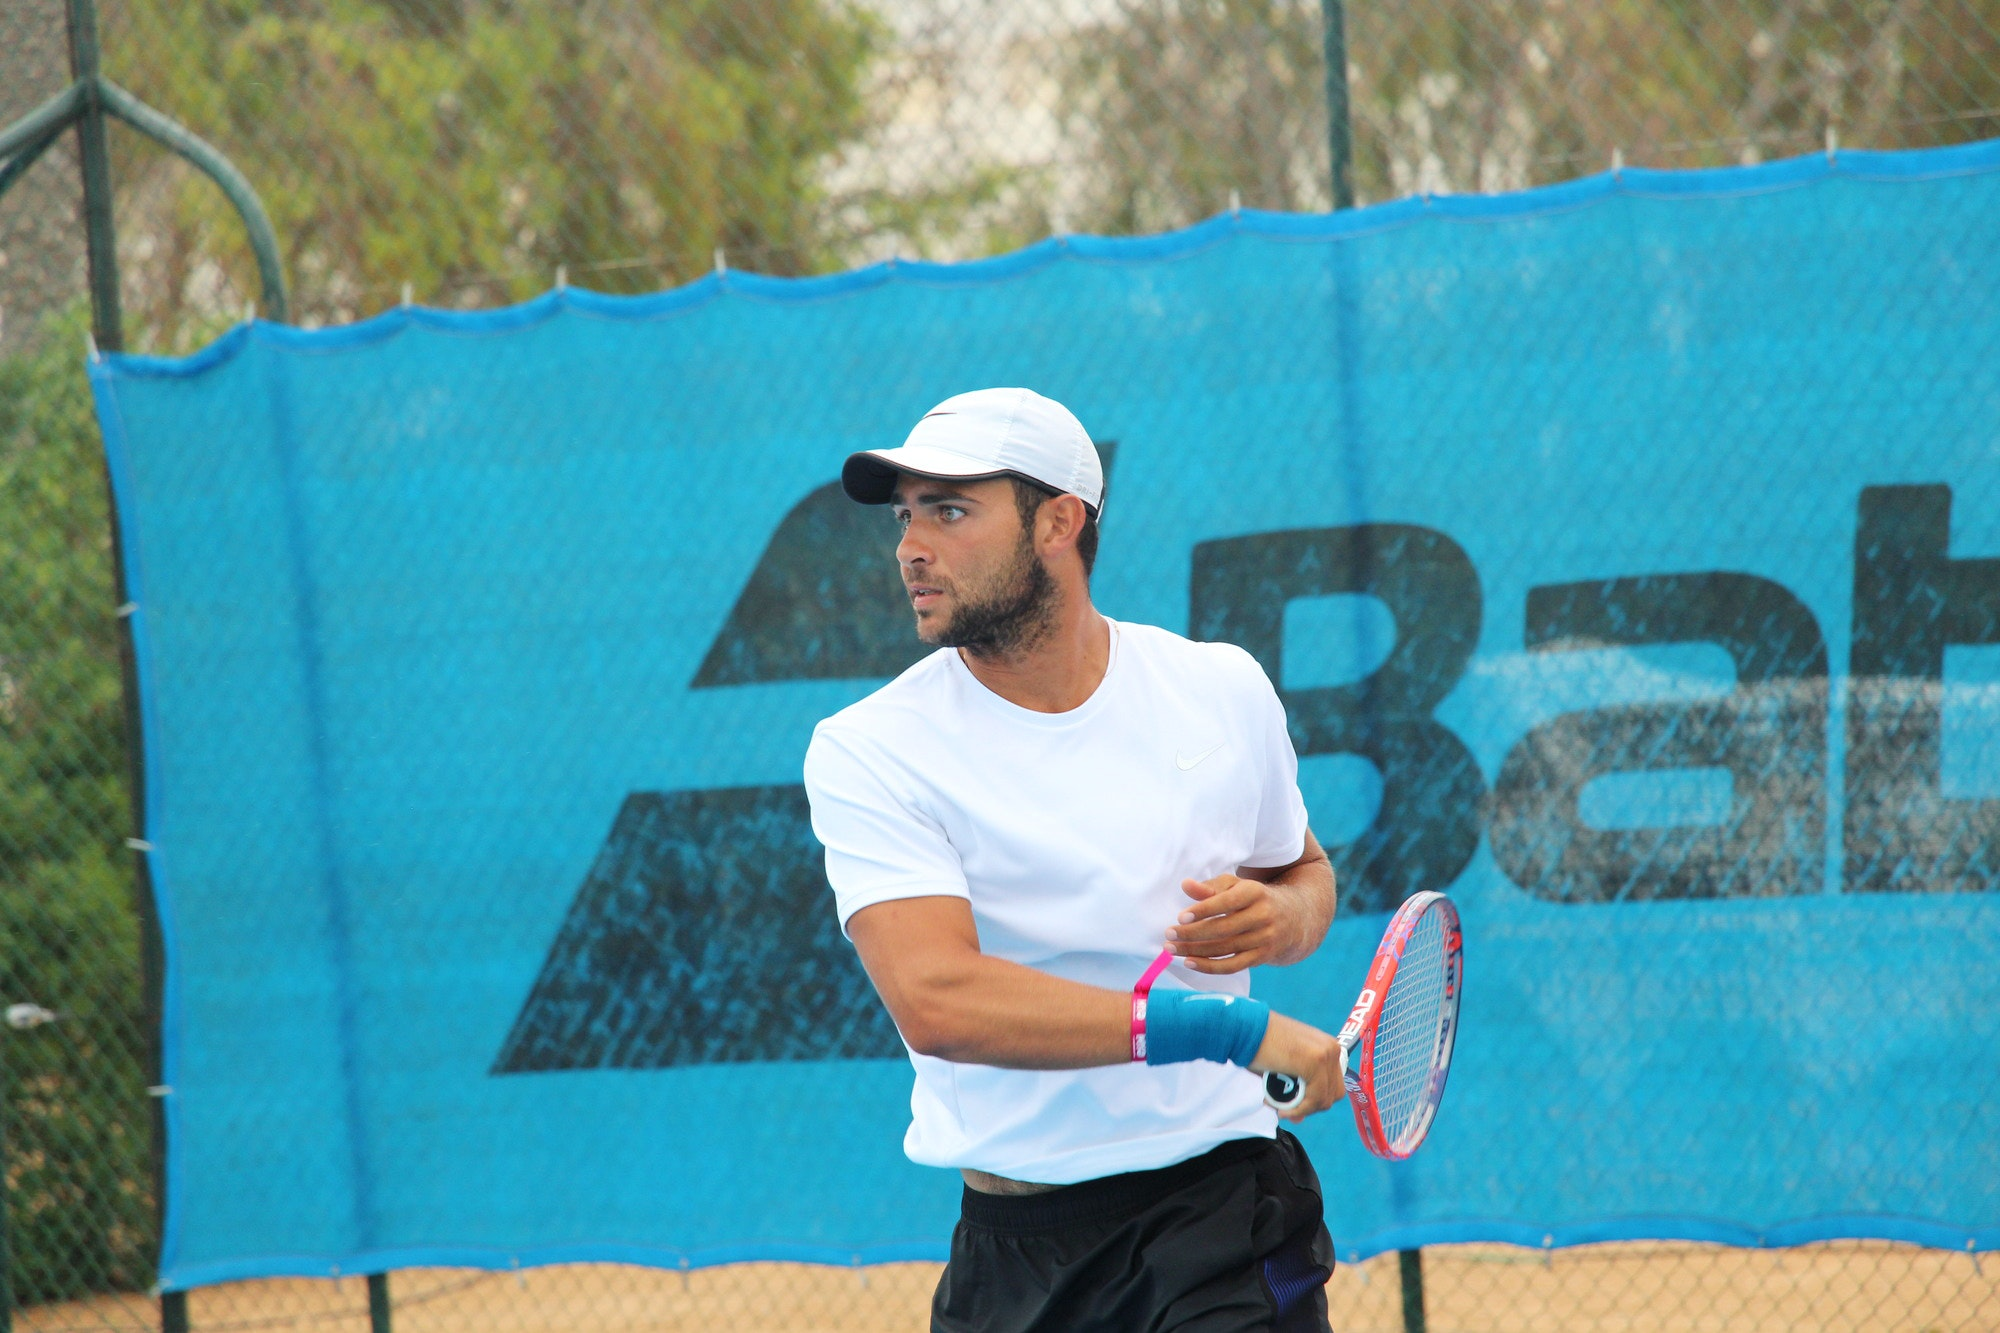 Hillel R. teaches tennis lessons in Miami , FL